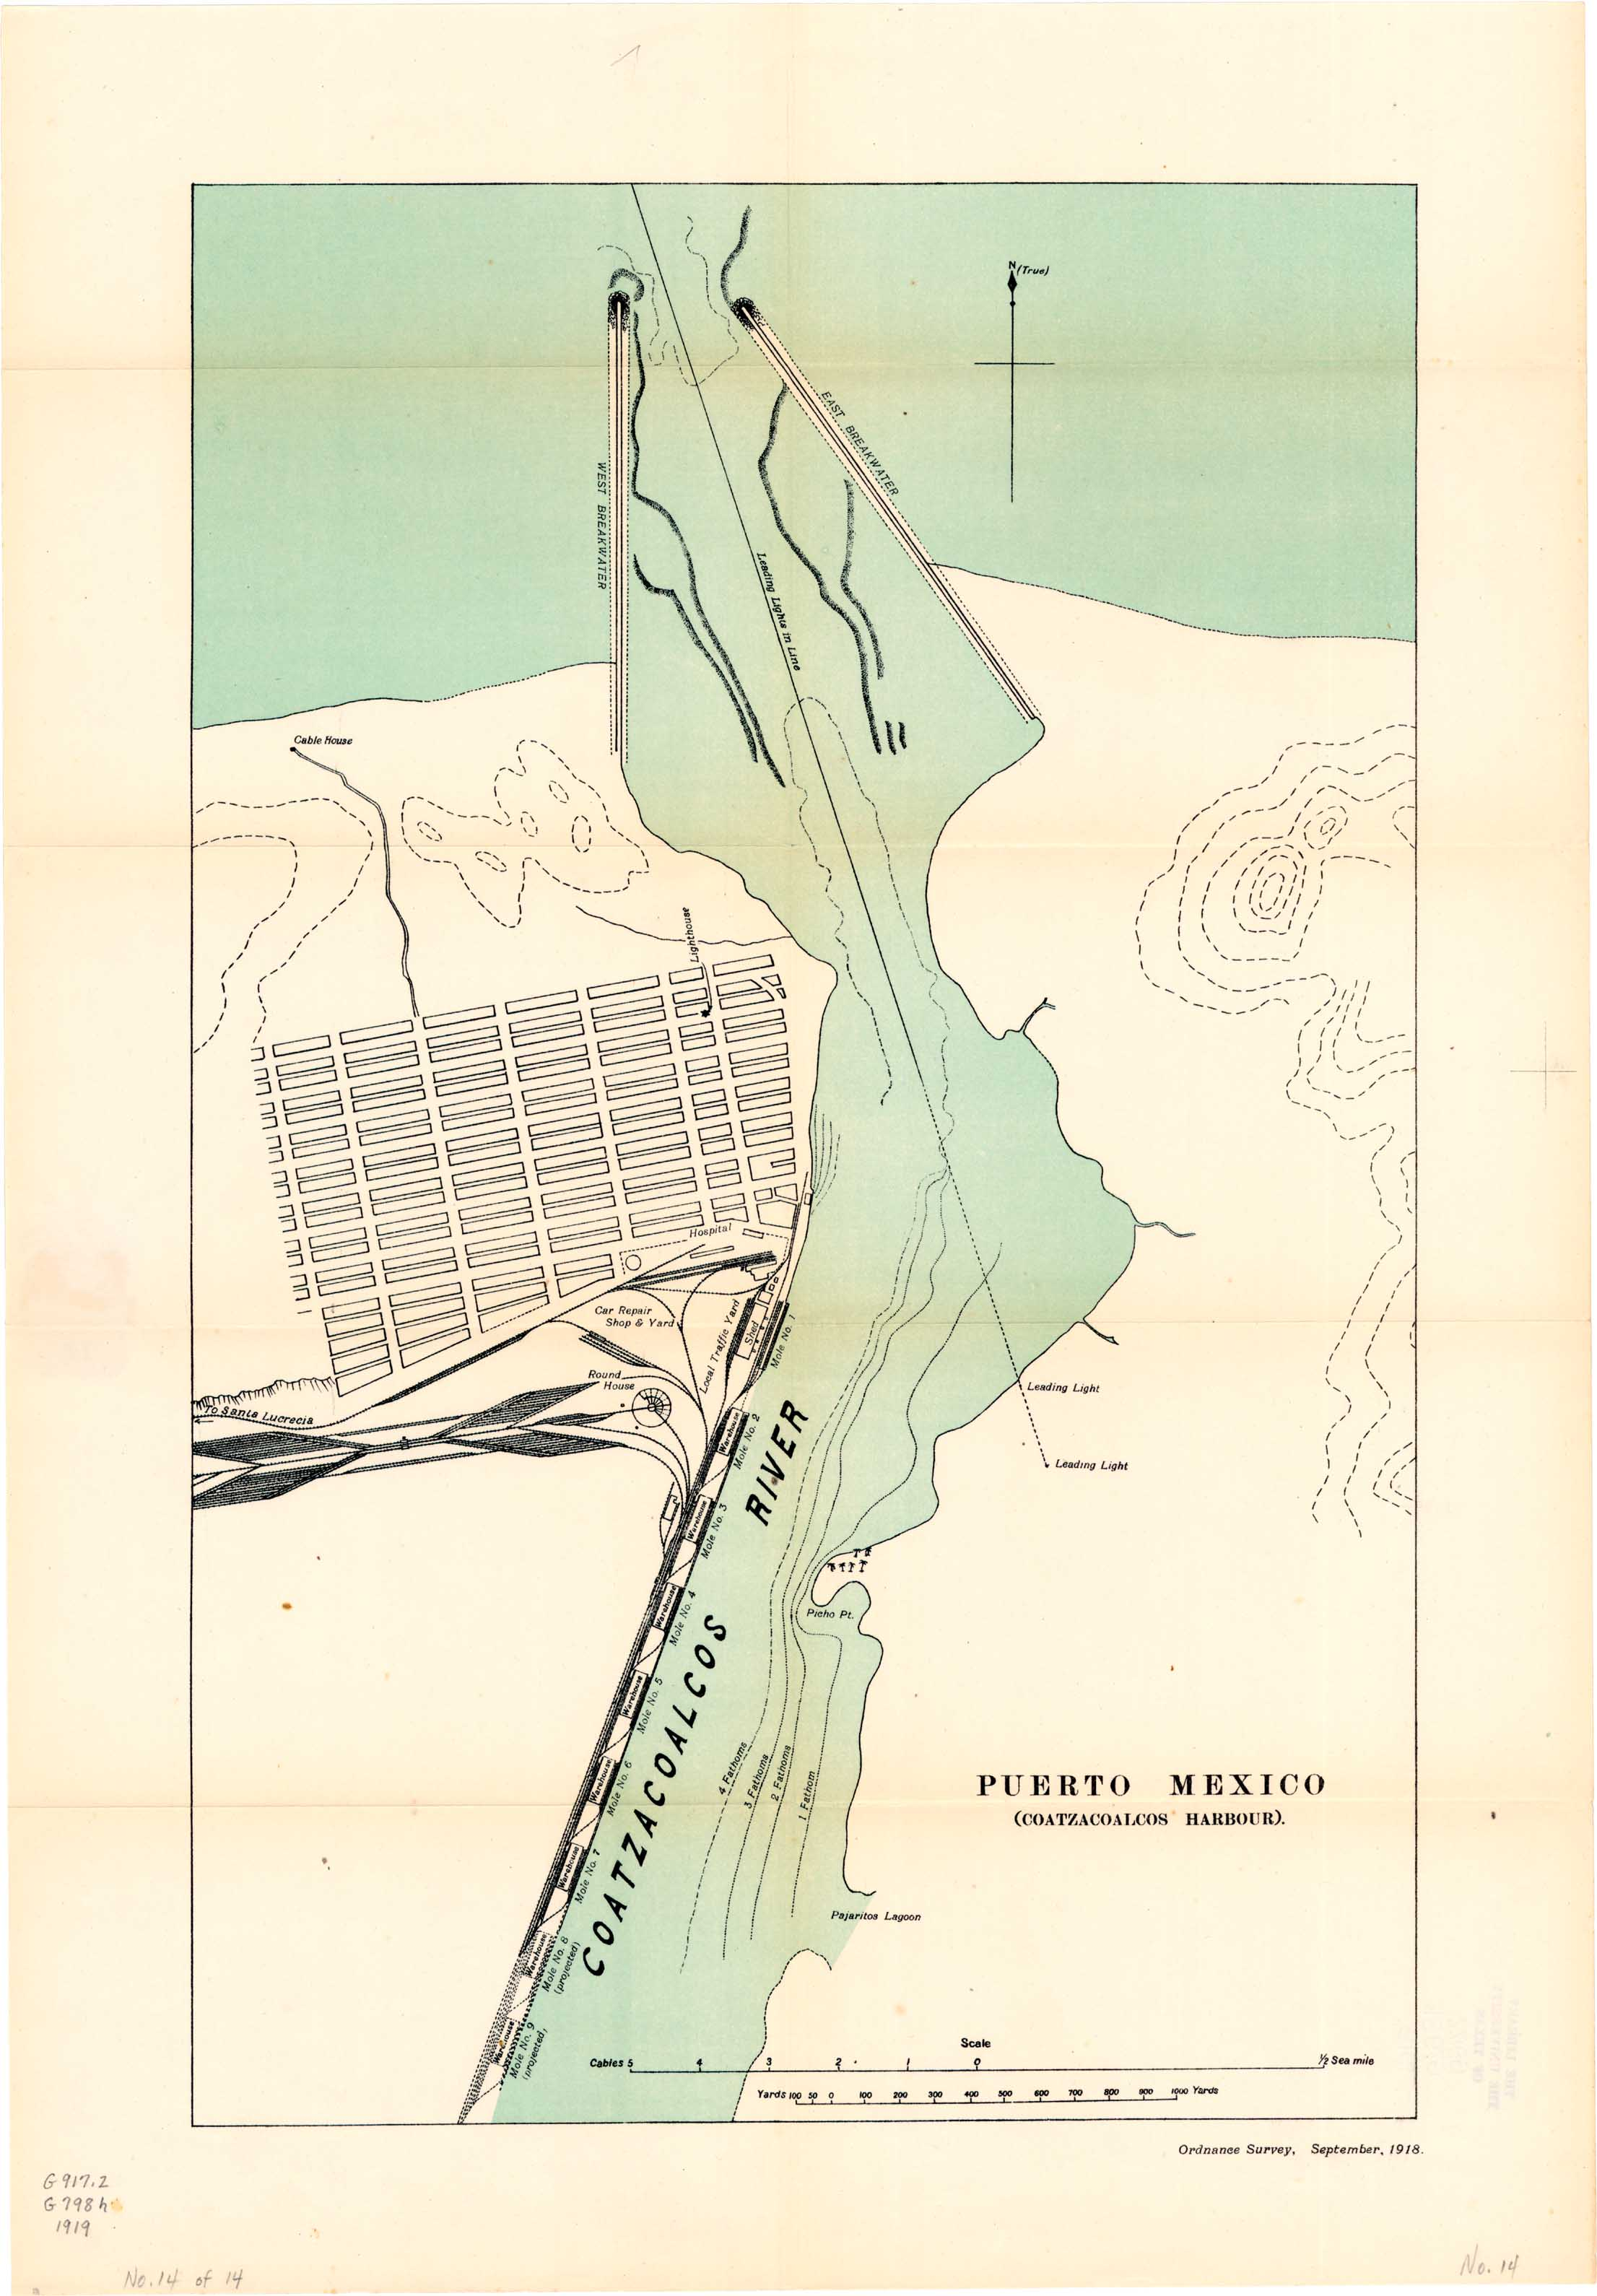 Plans of Seaport Towns: Puerto Mexico (Coatzacoalcos Harbour), Mexico